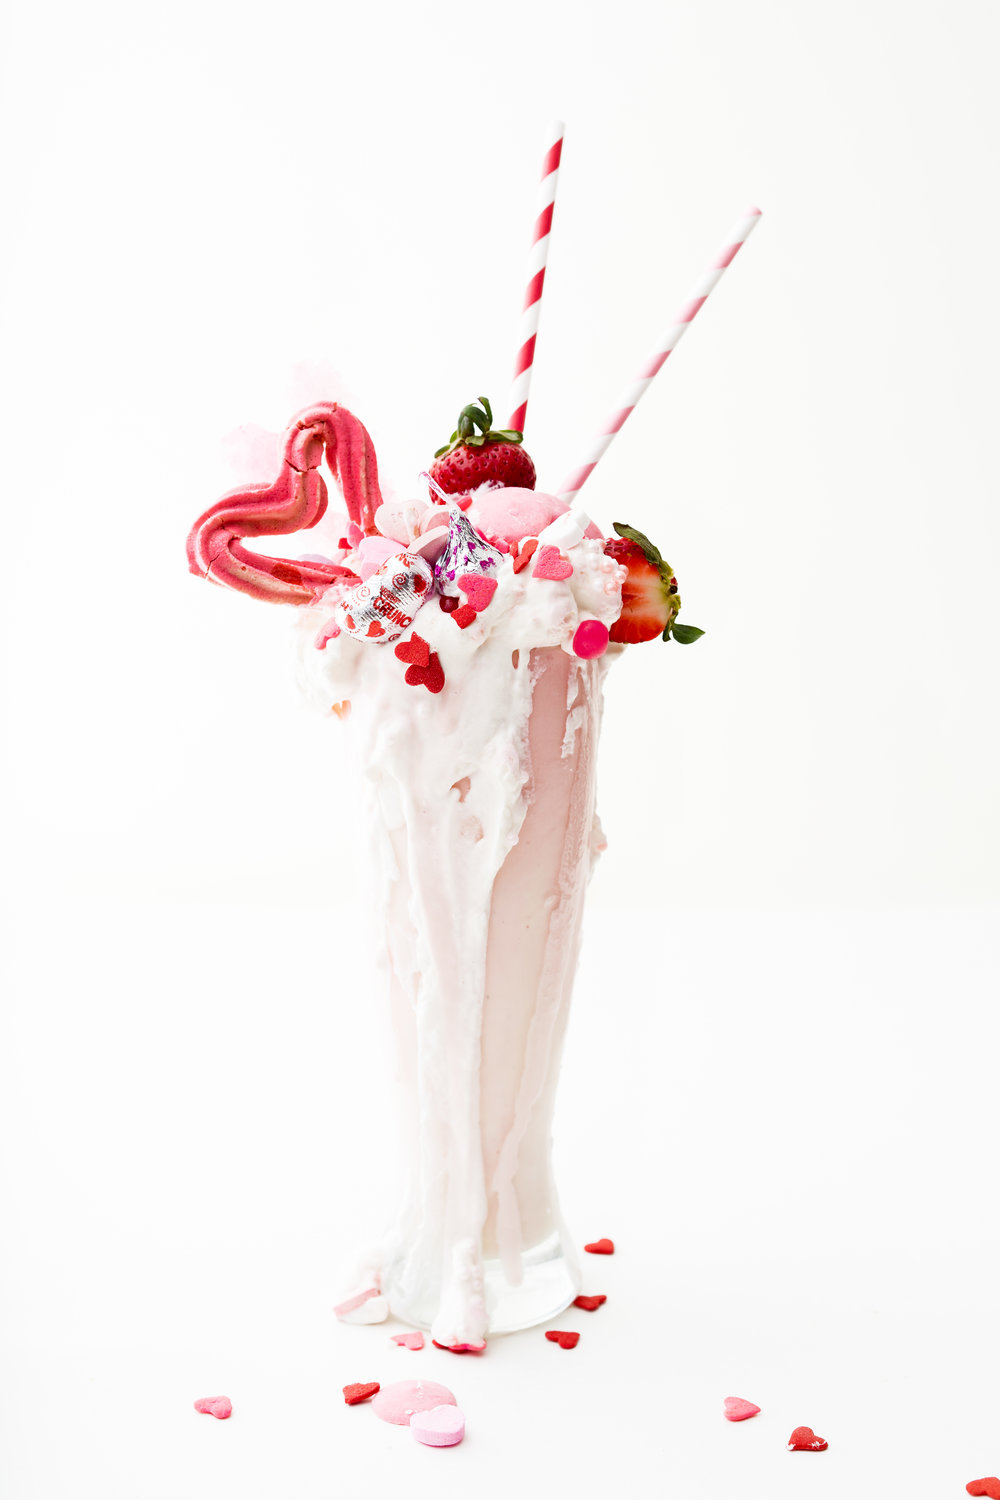 Ultimate Strawberry Milkshake 3.jpg